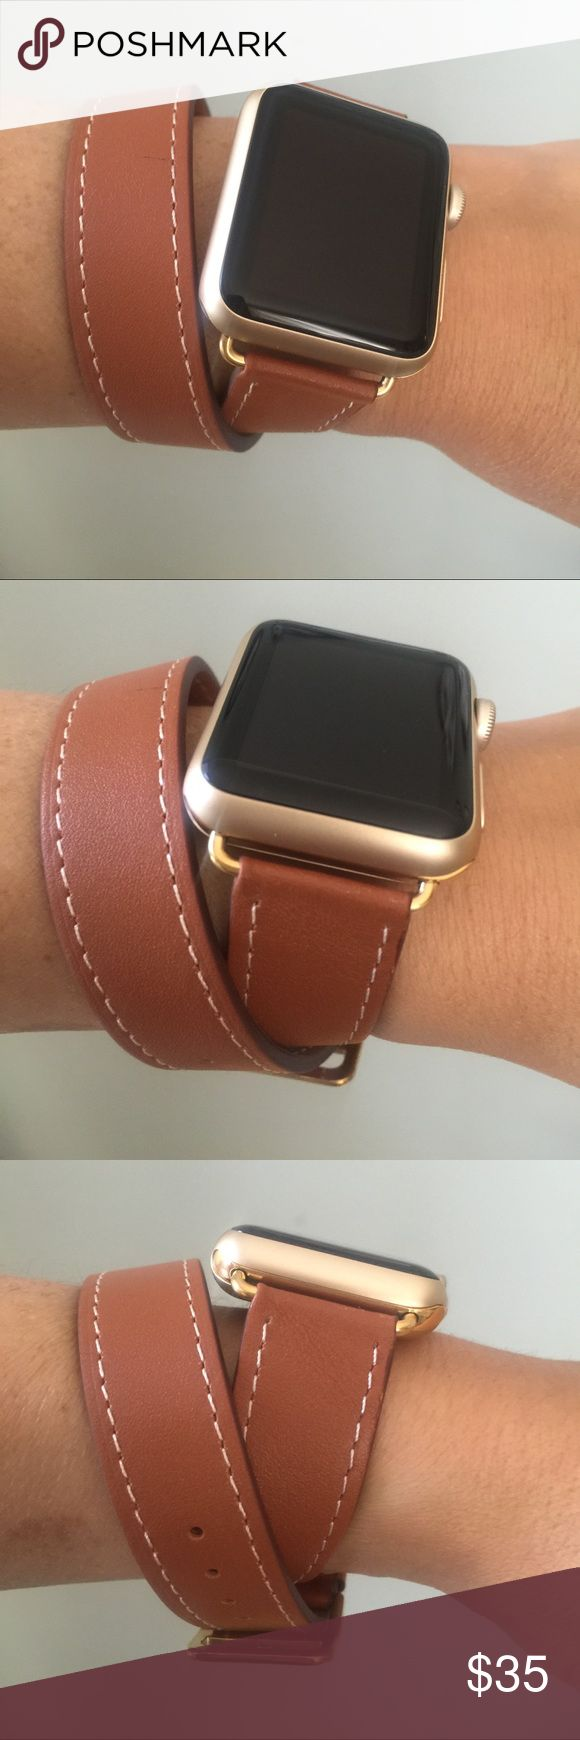 GOLD hardware Apple Watch band, brown leather! ❤️ Brown double tour Apple Watch band with GOLD hardware!   Double wrap leather band.  It comes in 38mm and 42mm. Please select your size when you purchase. The adapters also fit the Apple Watch Sport.   I also have other band colors, hardware colors and styles in my closet. Check them out!   I offer 15% off if you buy two or more! only the band is for sale; it does not include the watch. Other